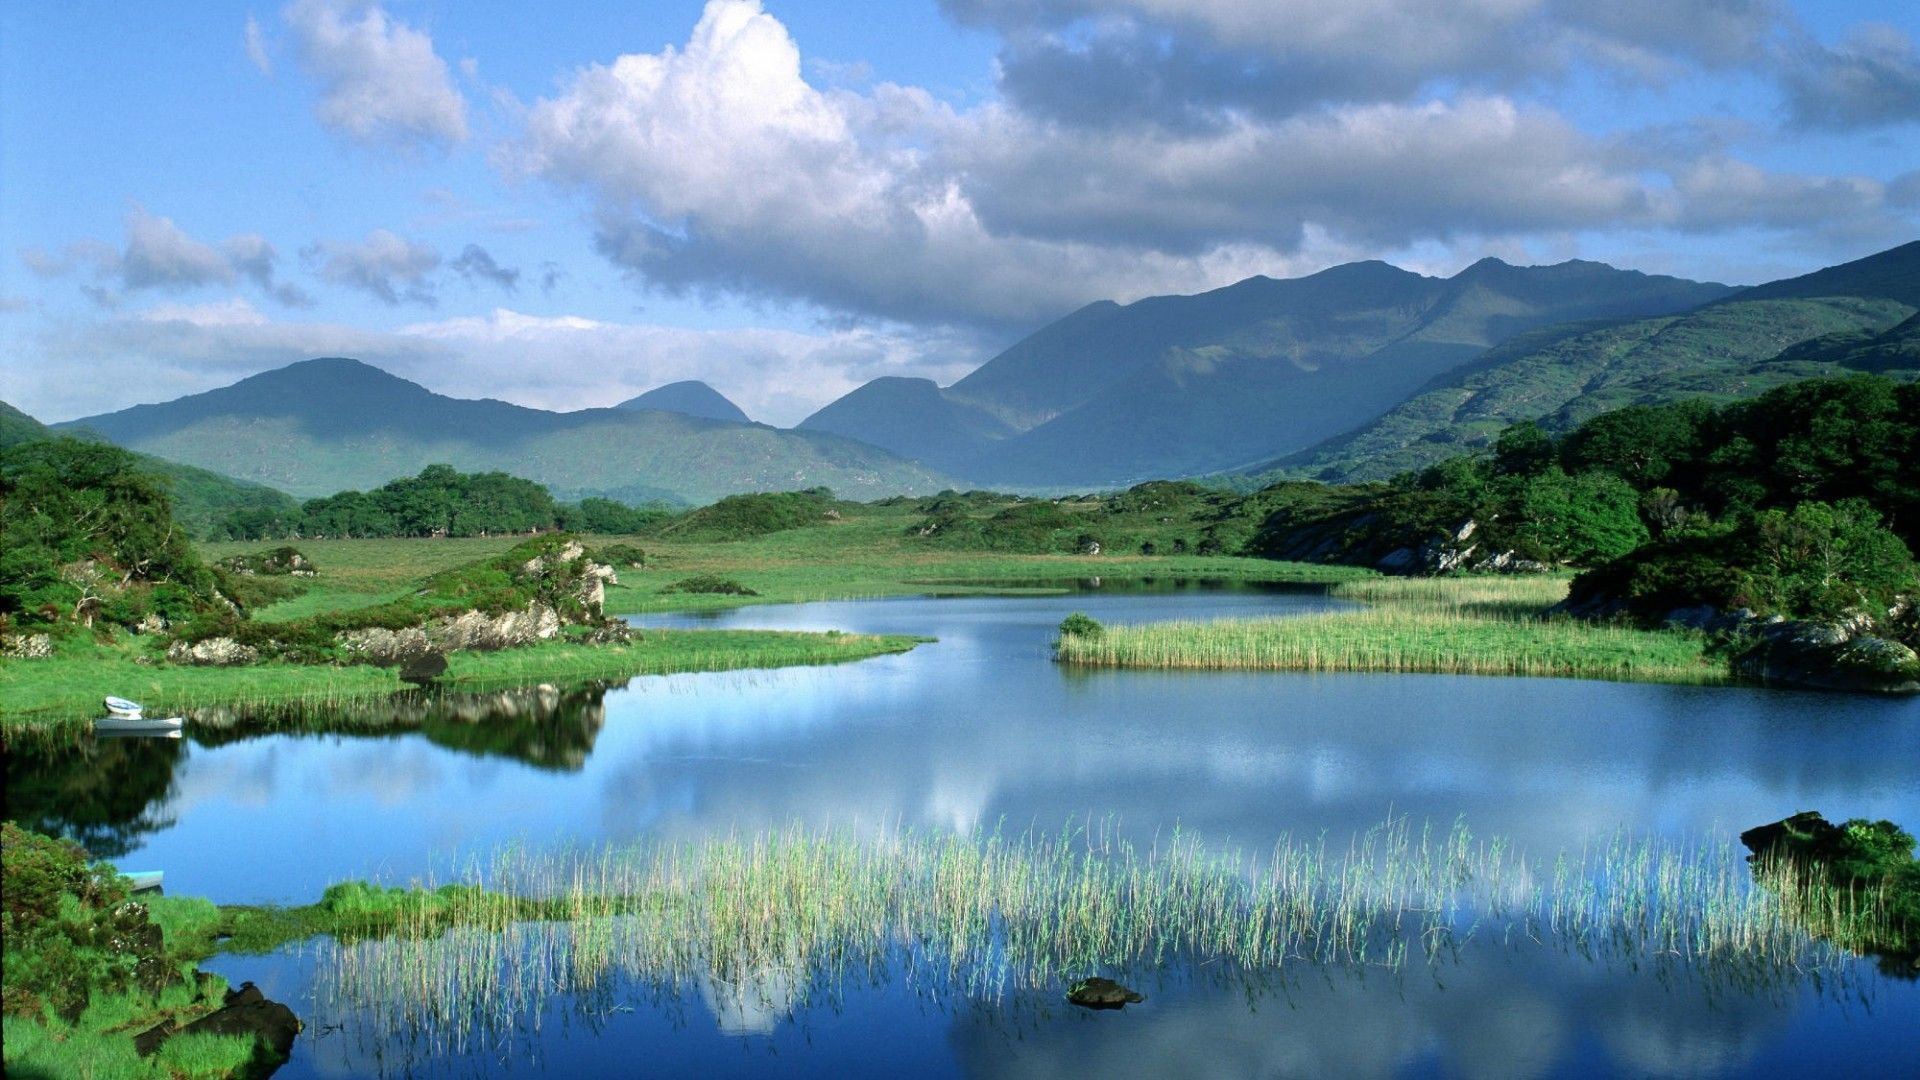 Amazing nature wallpapers national geographic wallpaper 7897046 - Amazing Nature Wallpaper Killarney Area Co Kerry